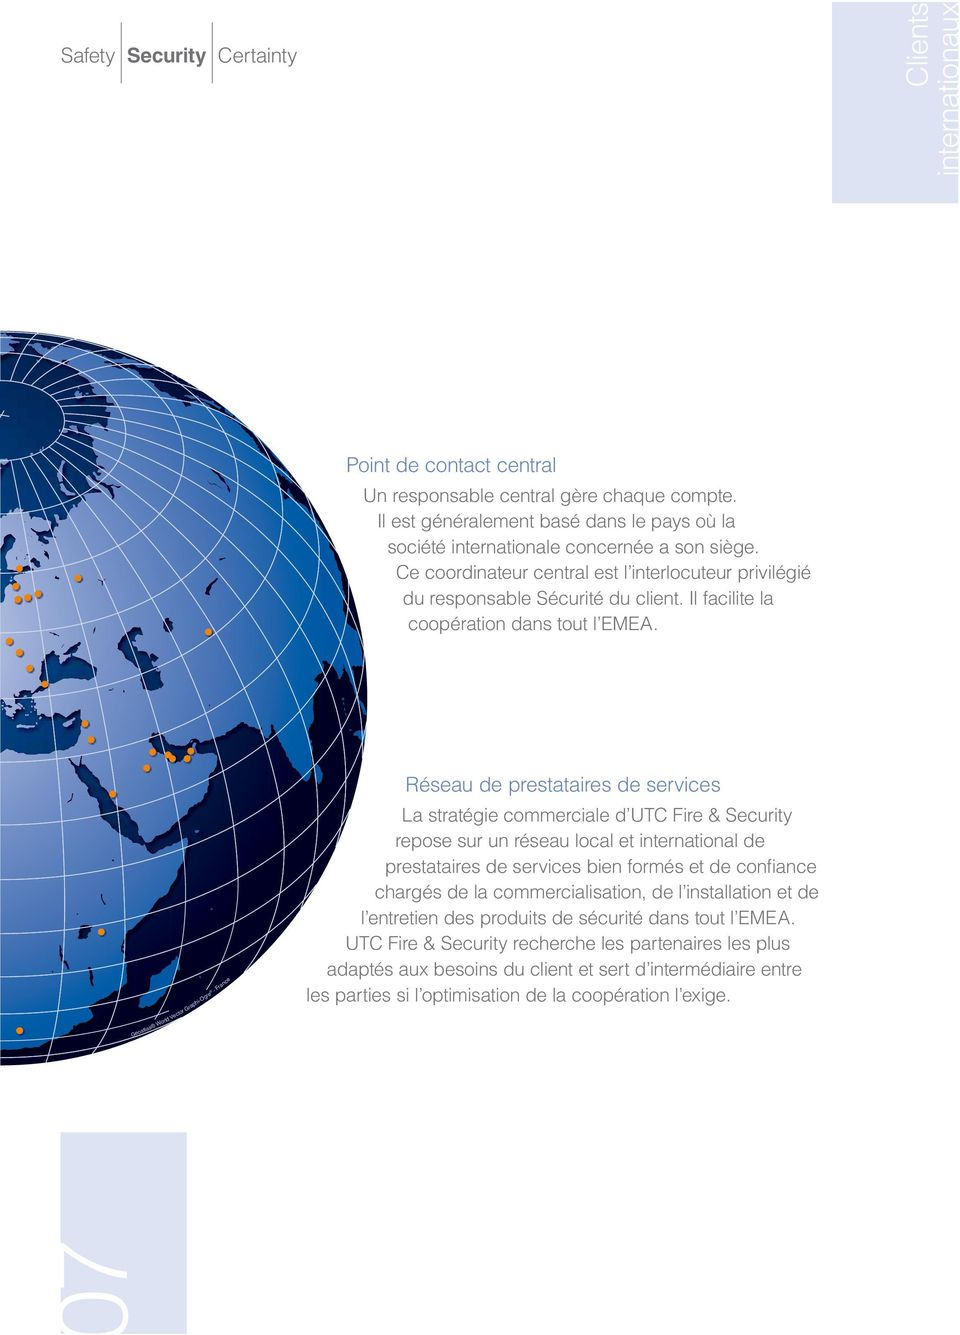 Geoatlas World Vector Graphi-Ogre - France Réseau de prestataires de services La stratégie commerciale d UTC Fire & Security repose sur un réseau local et international de prestataires de services